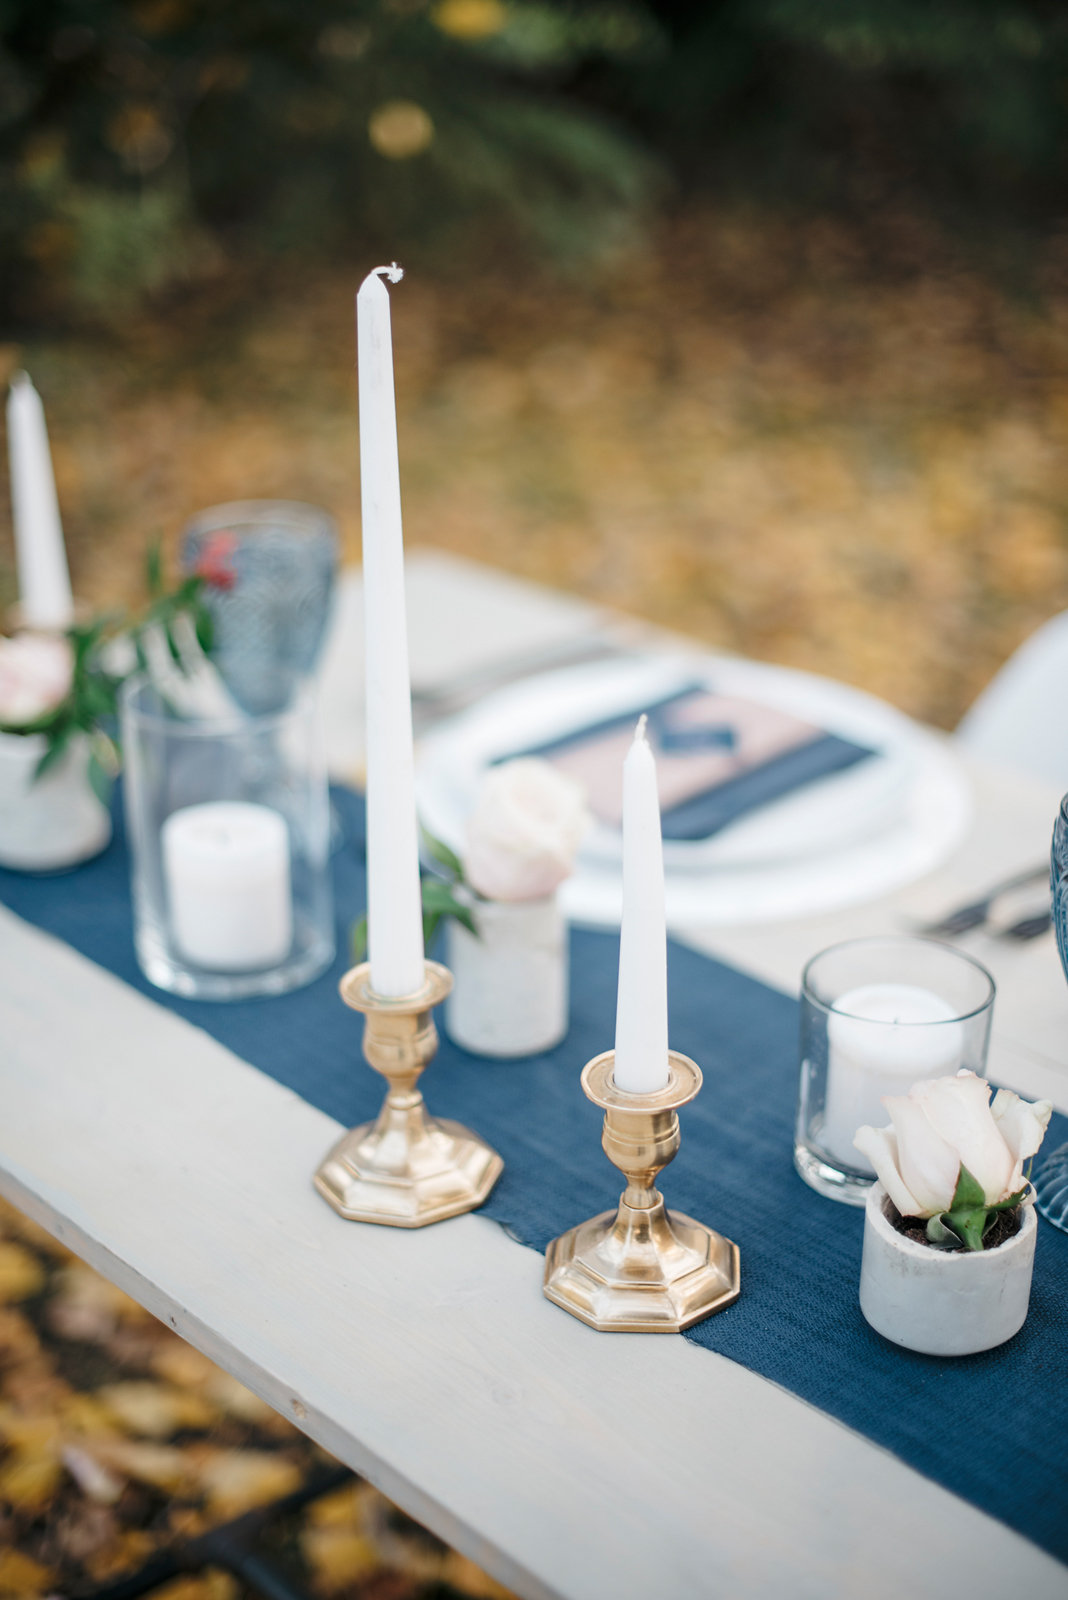 Get the look: gold candleholder